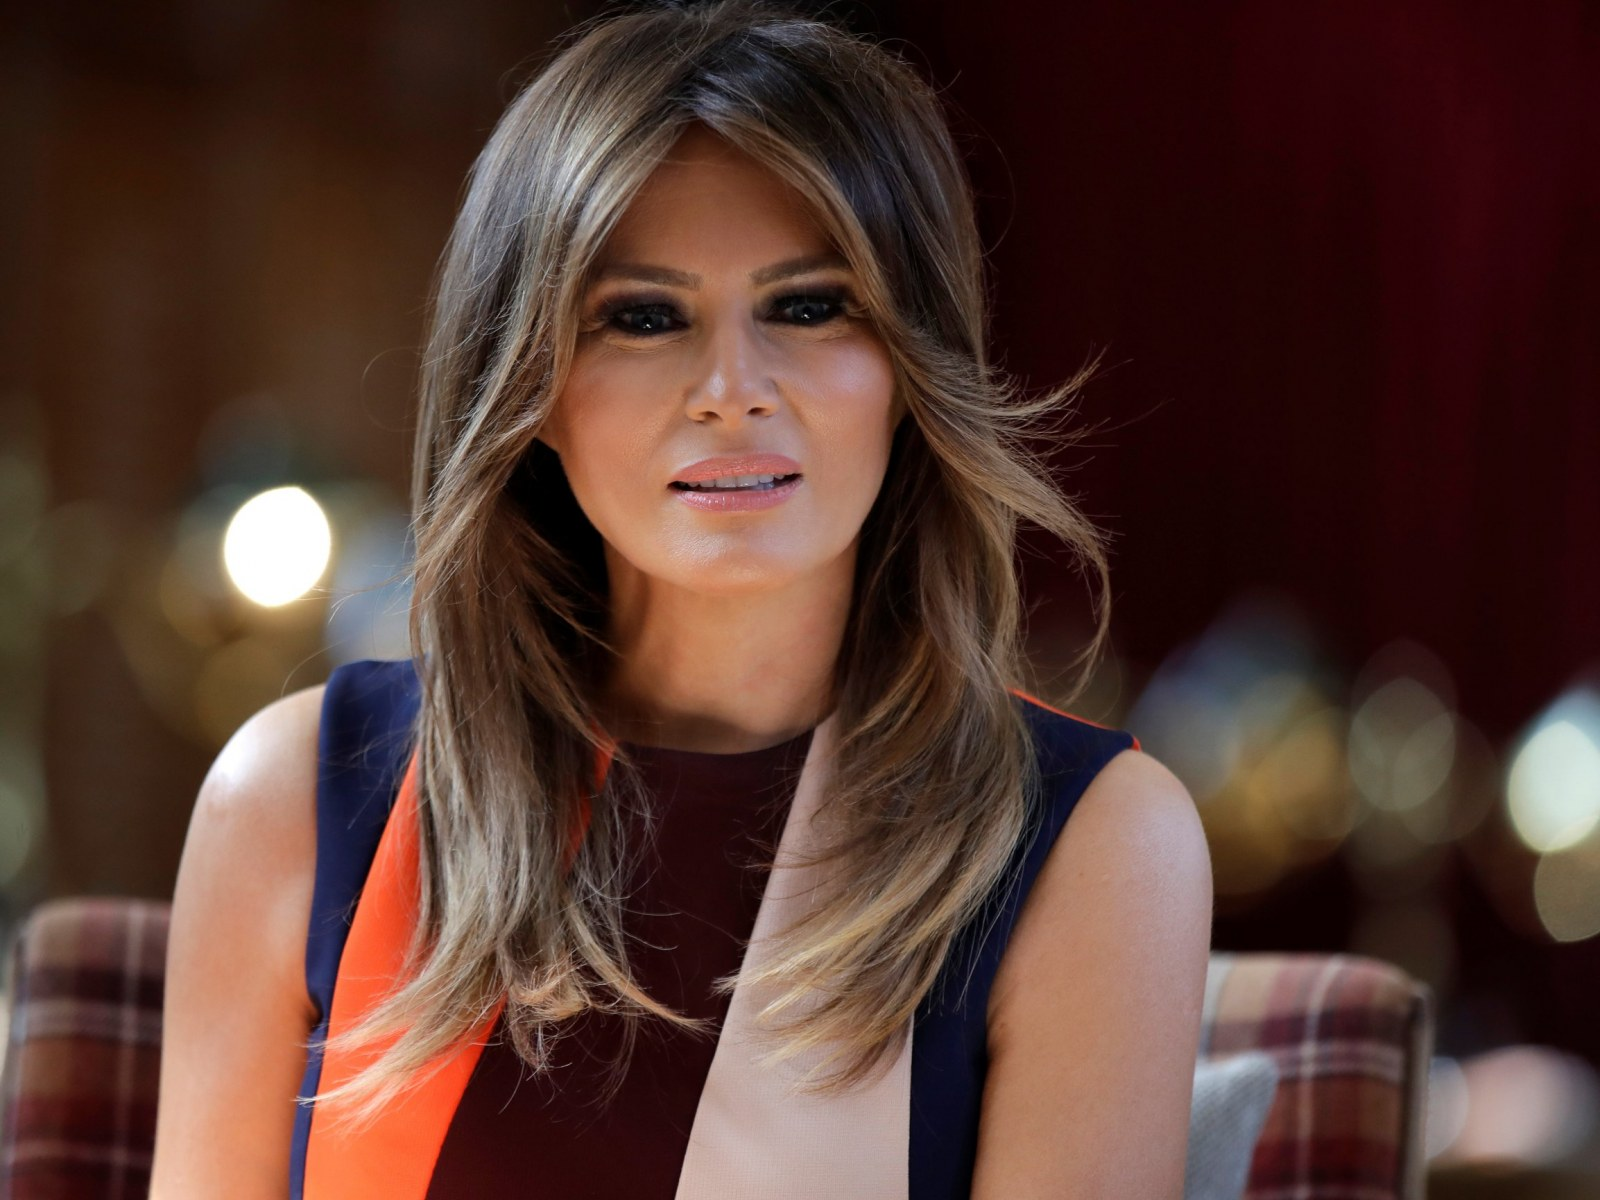 Melania Trumps Policy Director Leaves White House After